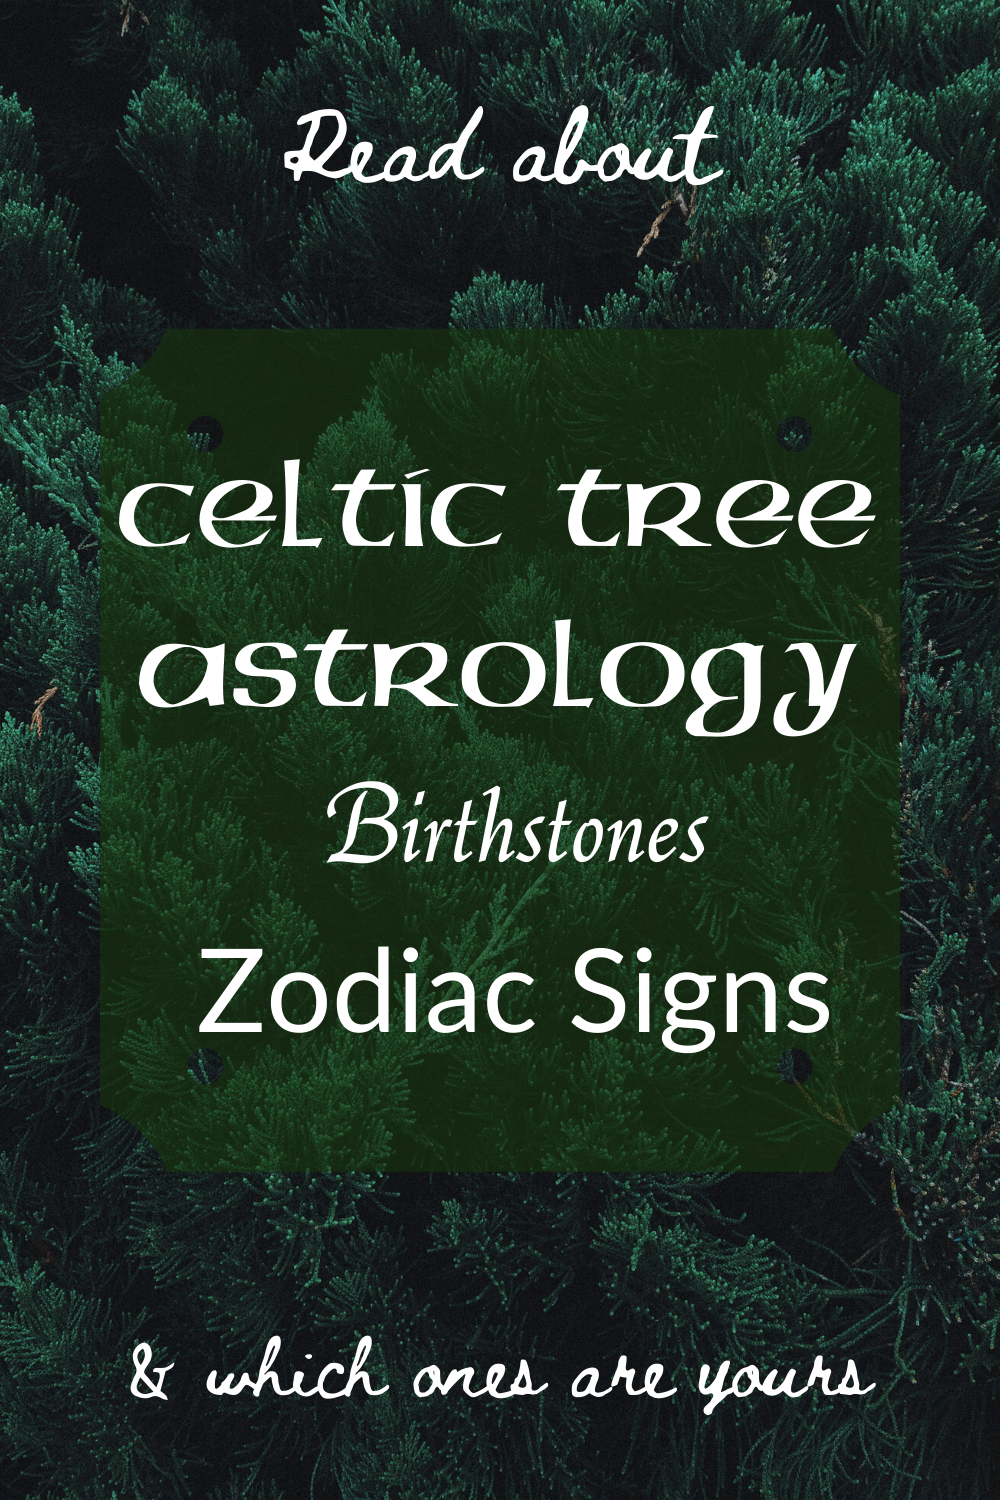 Celtic Tree Astrology  Birthstones  Zodiac Signs